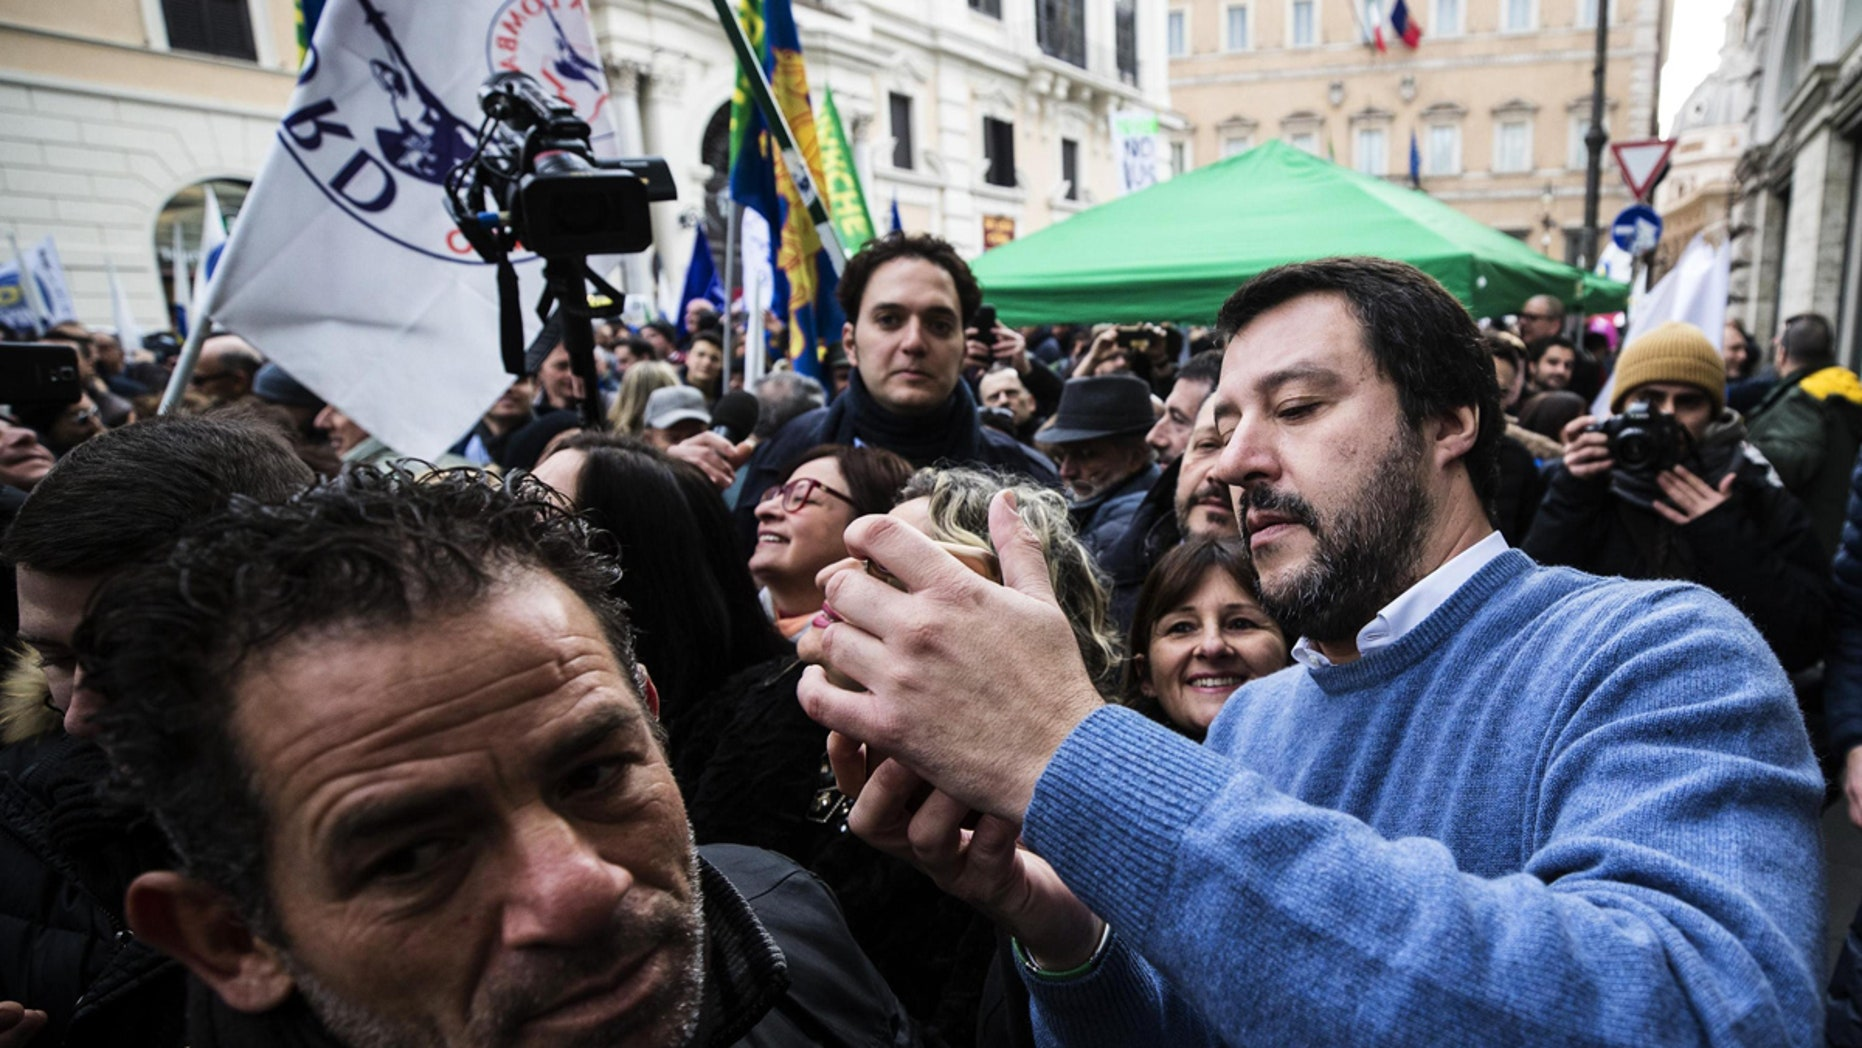 Northern League party leader Matteo Salvini attends demonstration opposing easier Italian citizenship for foreigners in Rome, Italy, Dec. 10, 2017.